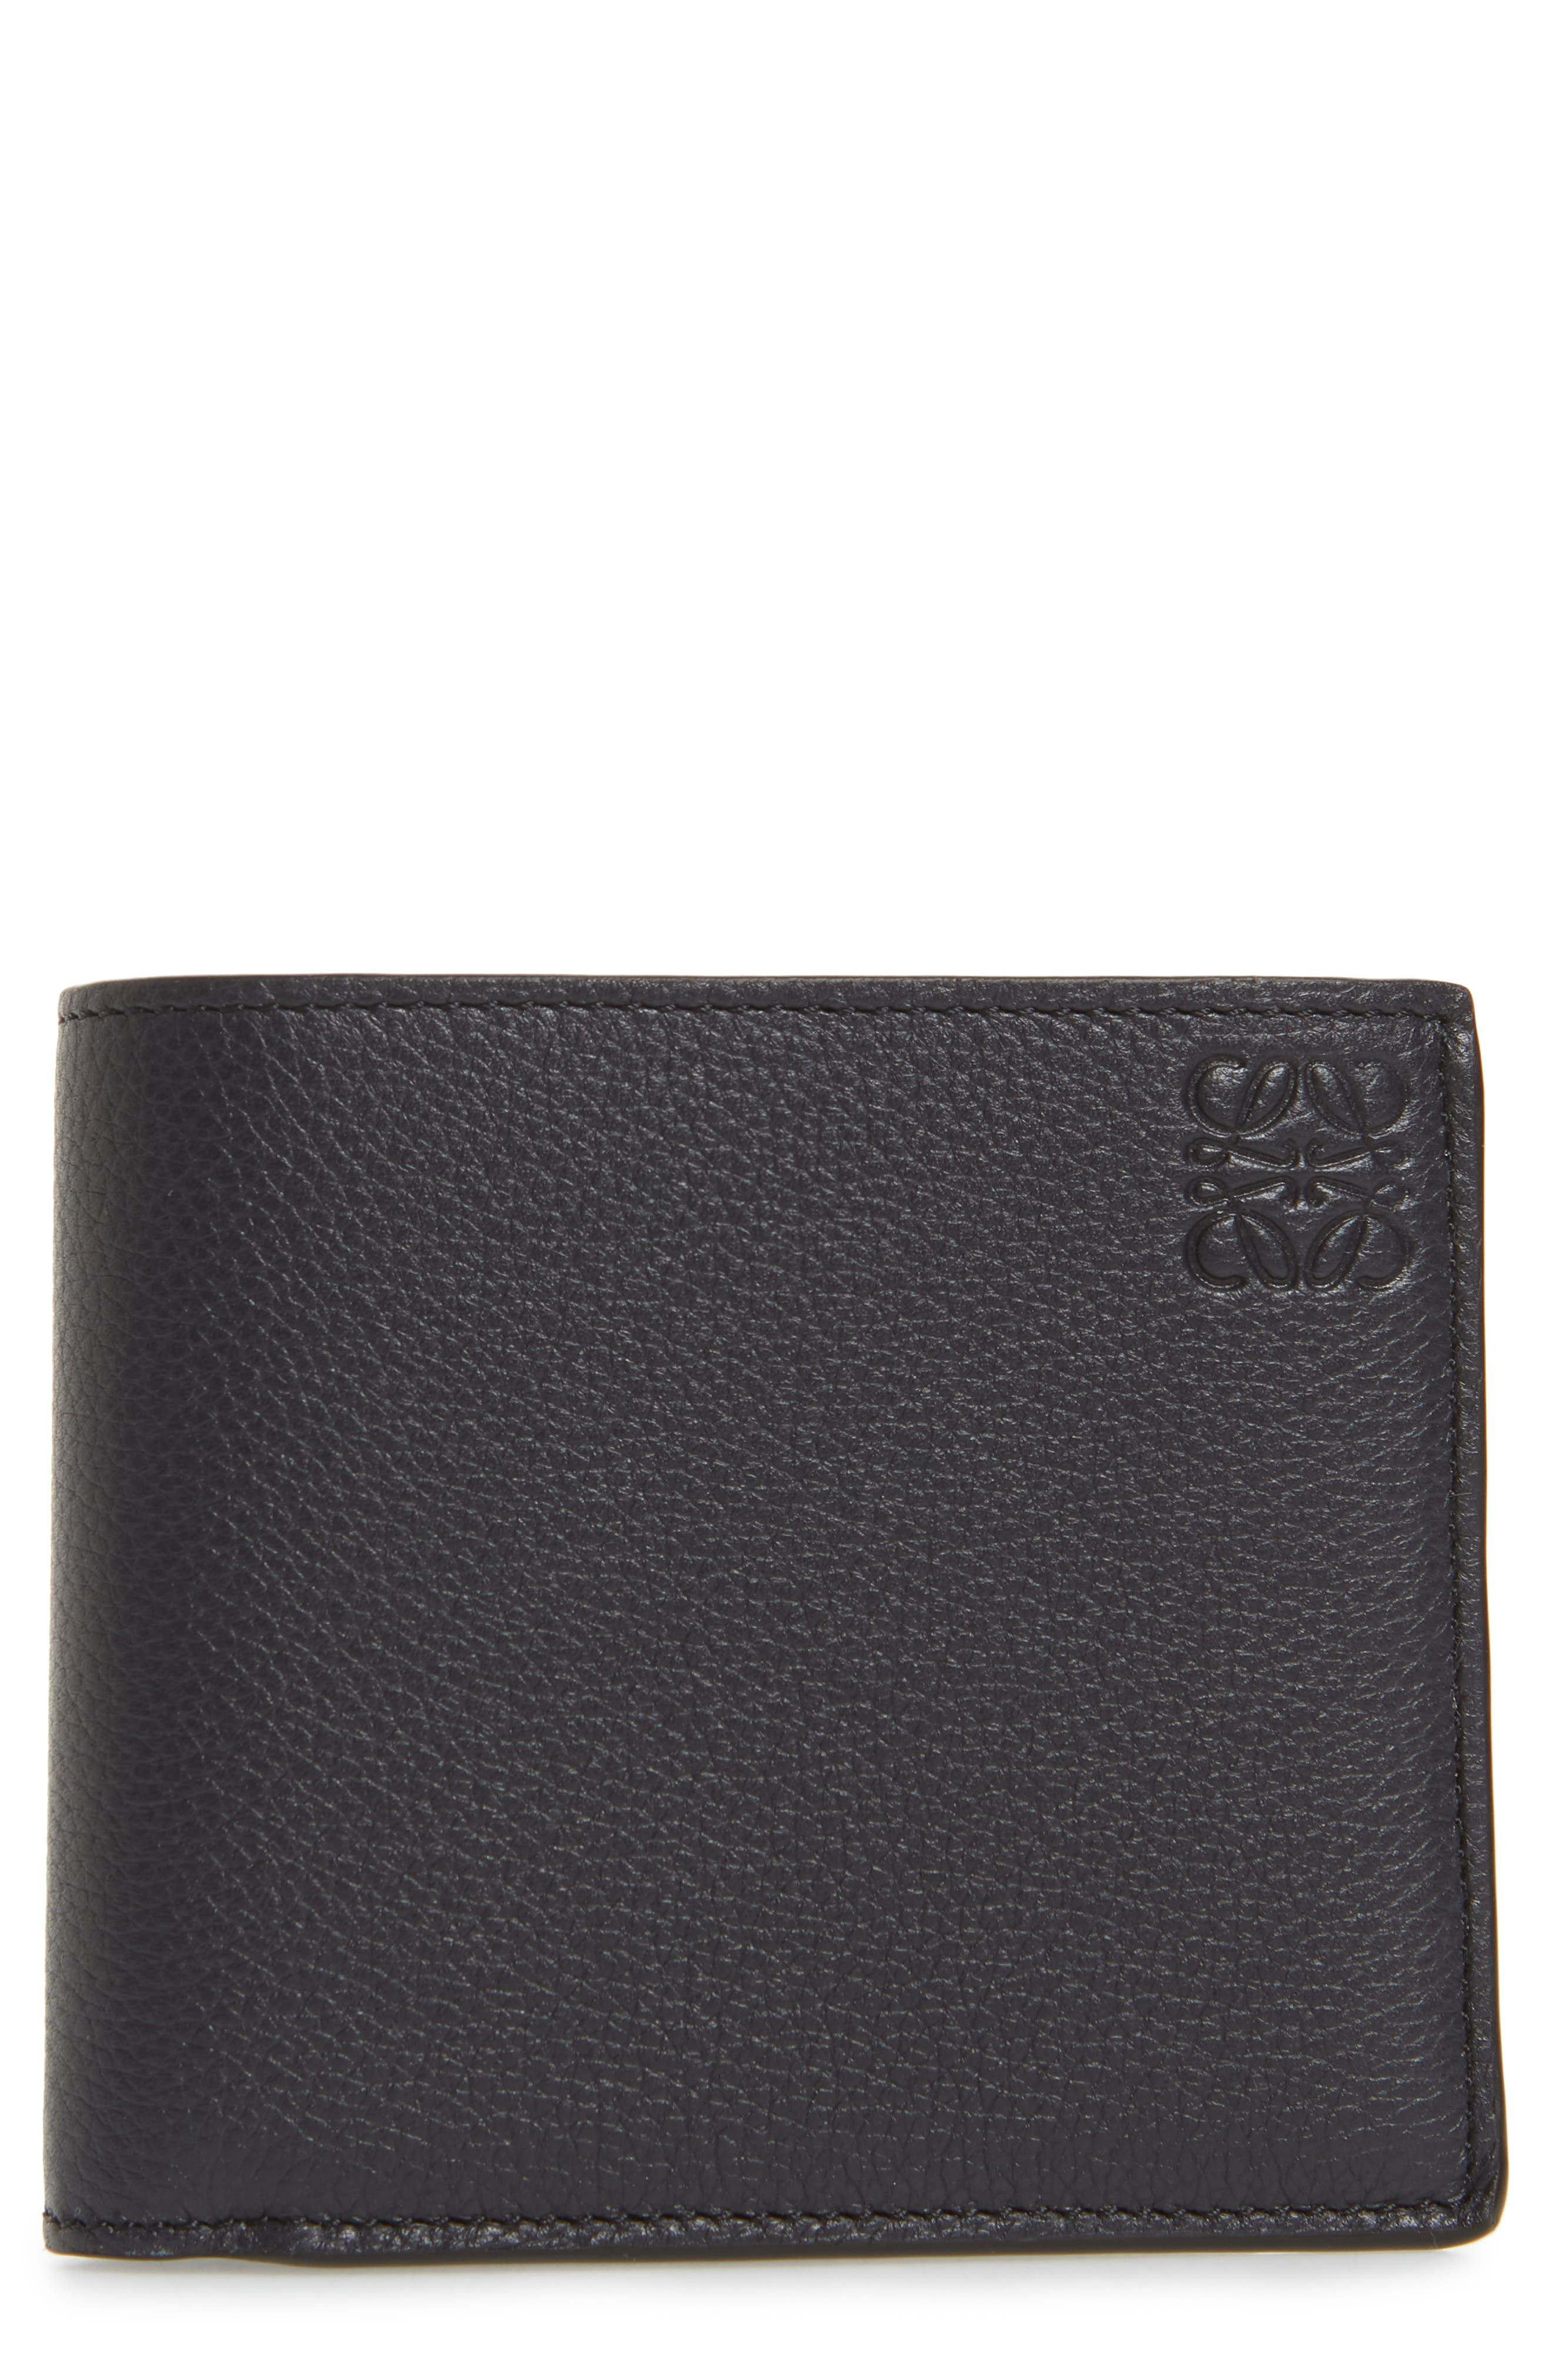 LOEWE Calfskin Leather Bifold Wallet, Main, color, MIDNIGHT